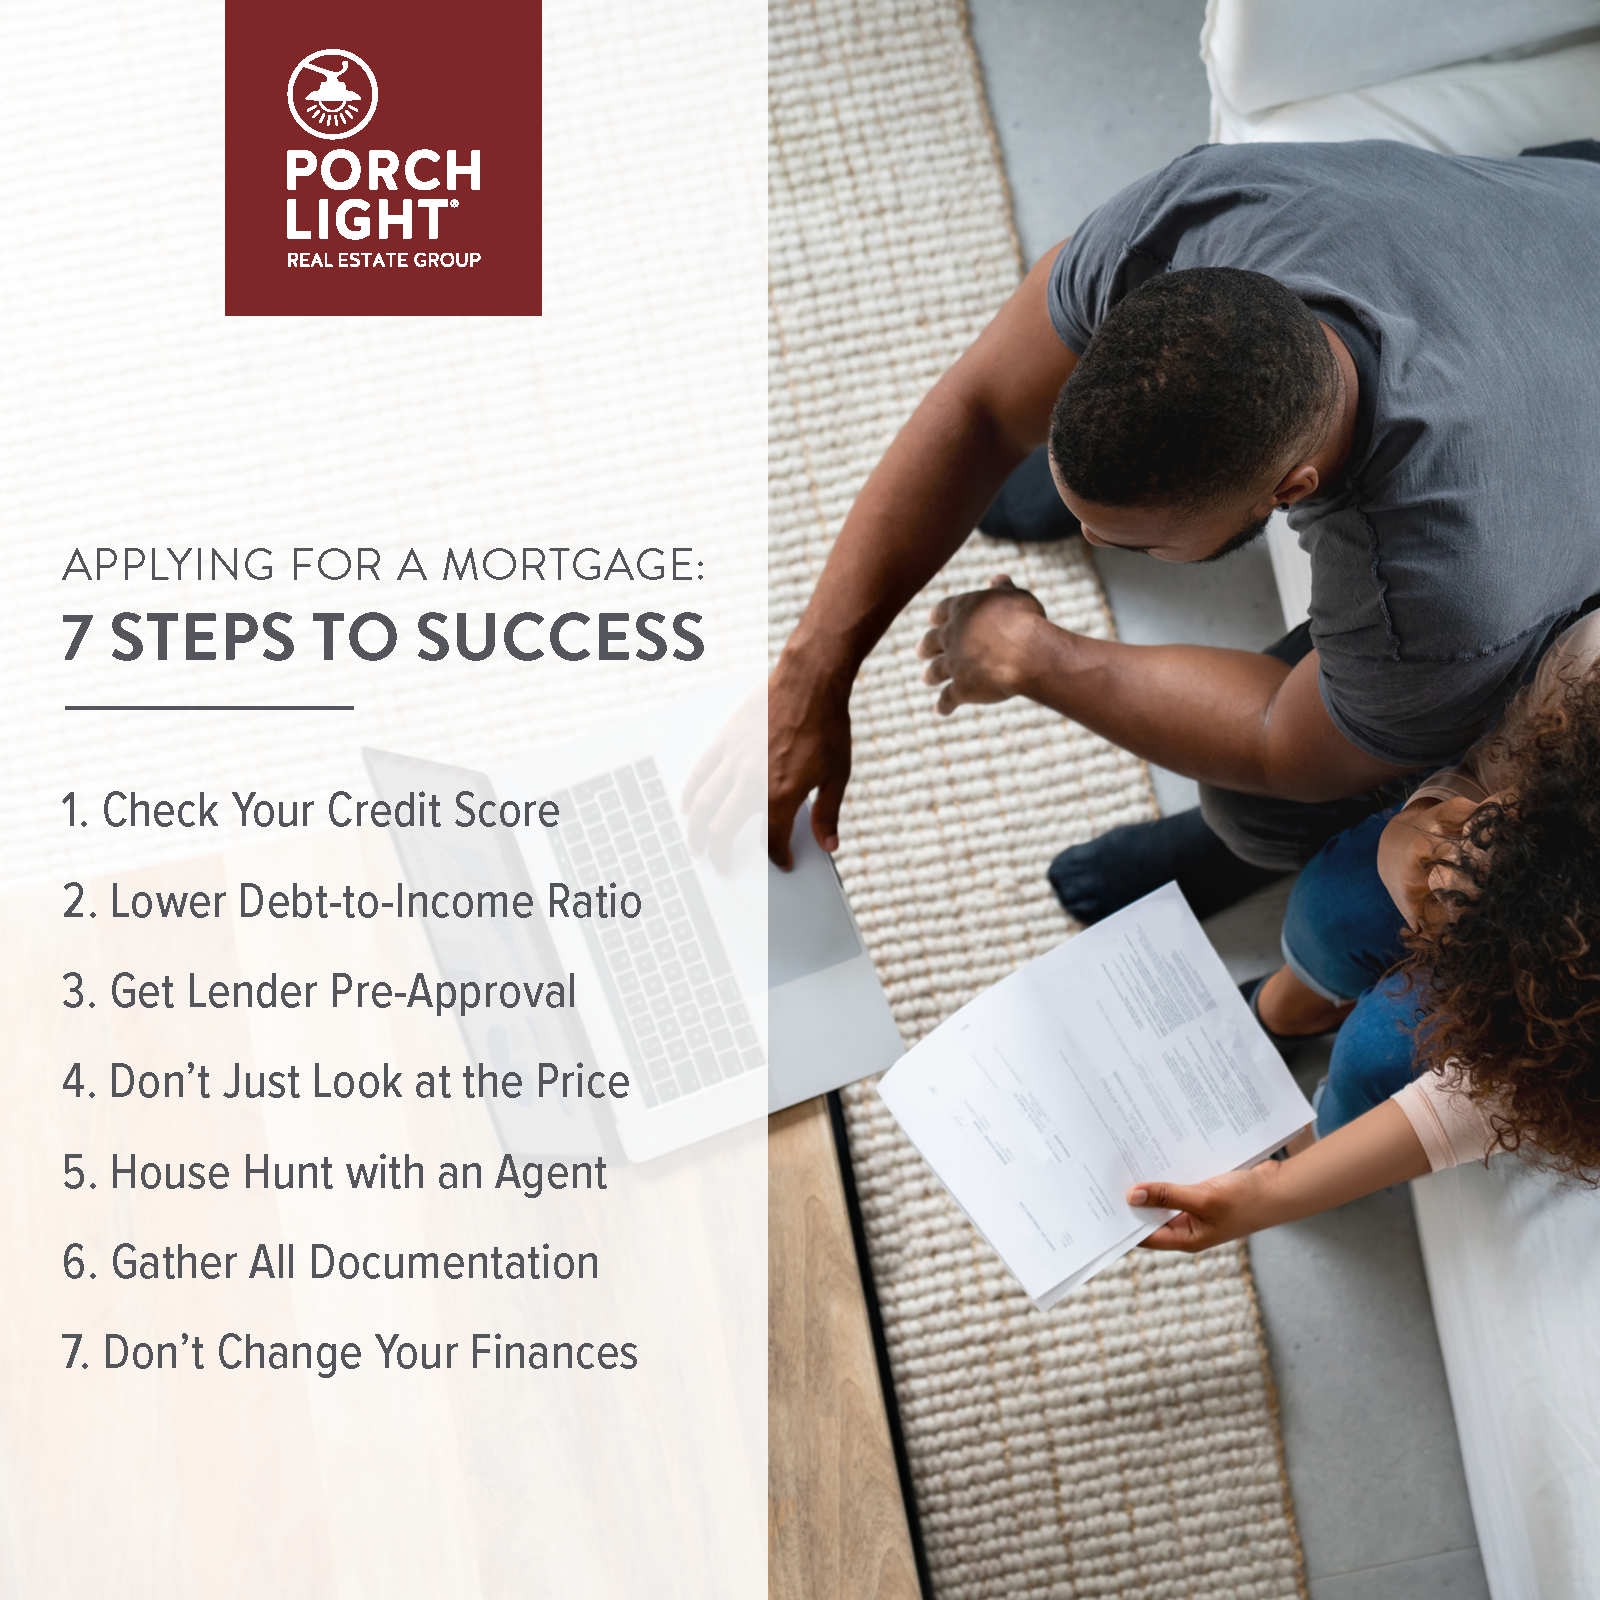 APPLYING FOR A MORTGAGE:   7 STEPS TO SUCCESS